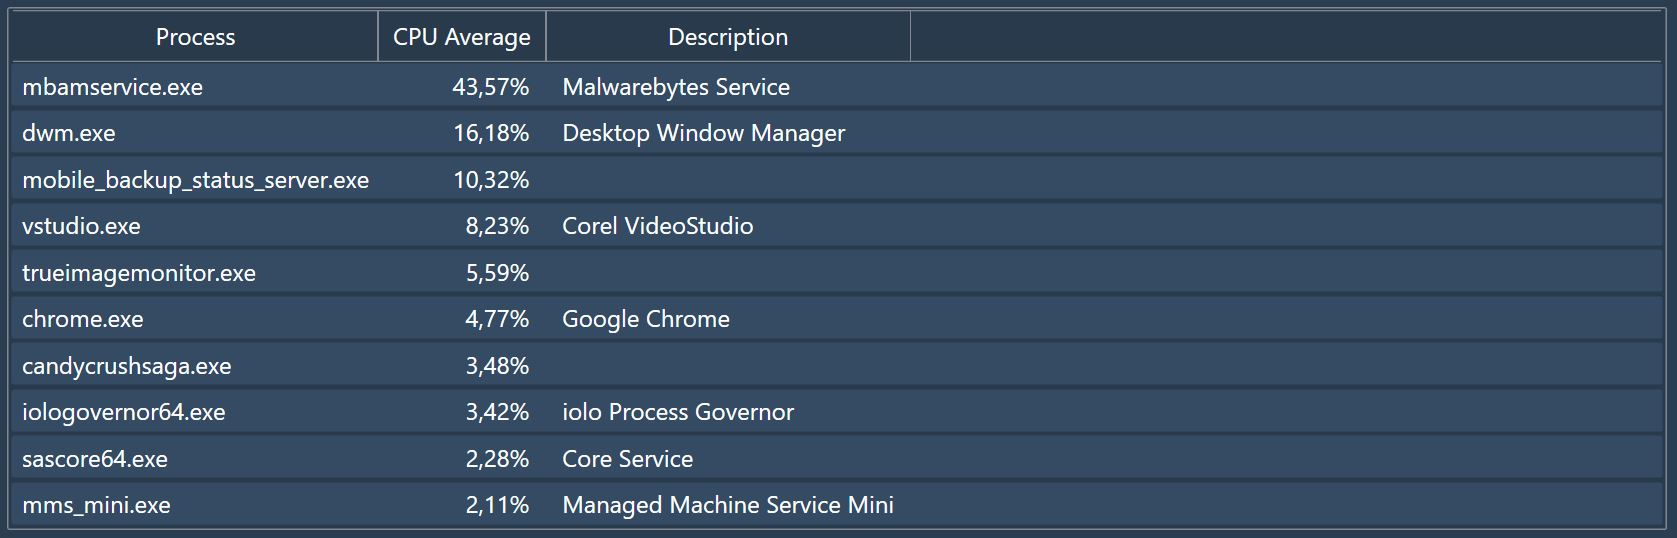 Malwarebytes CPU usage.JPG